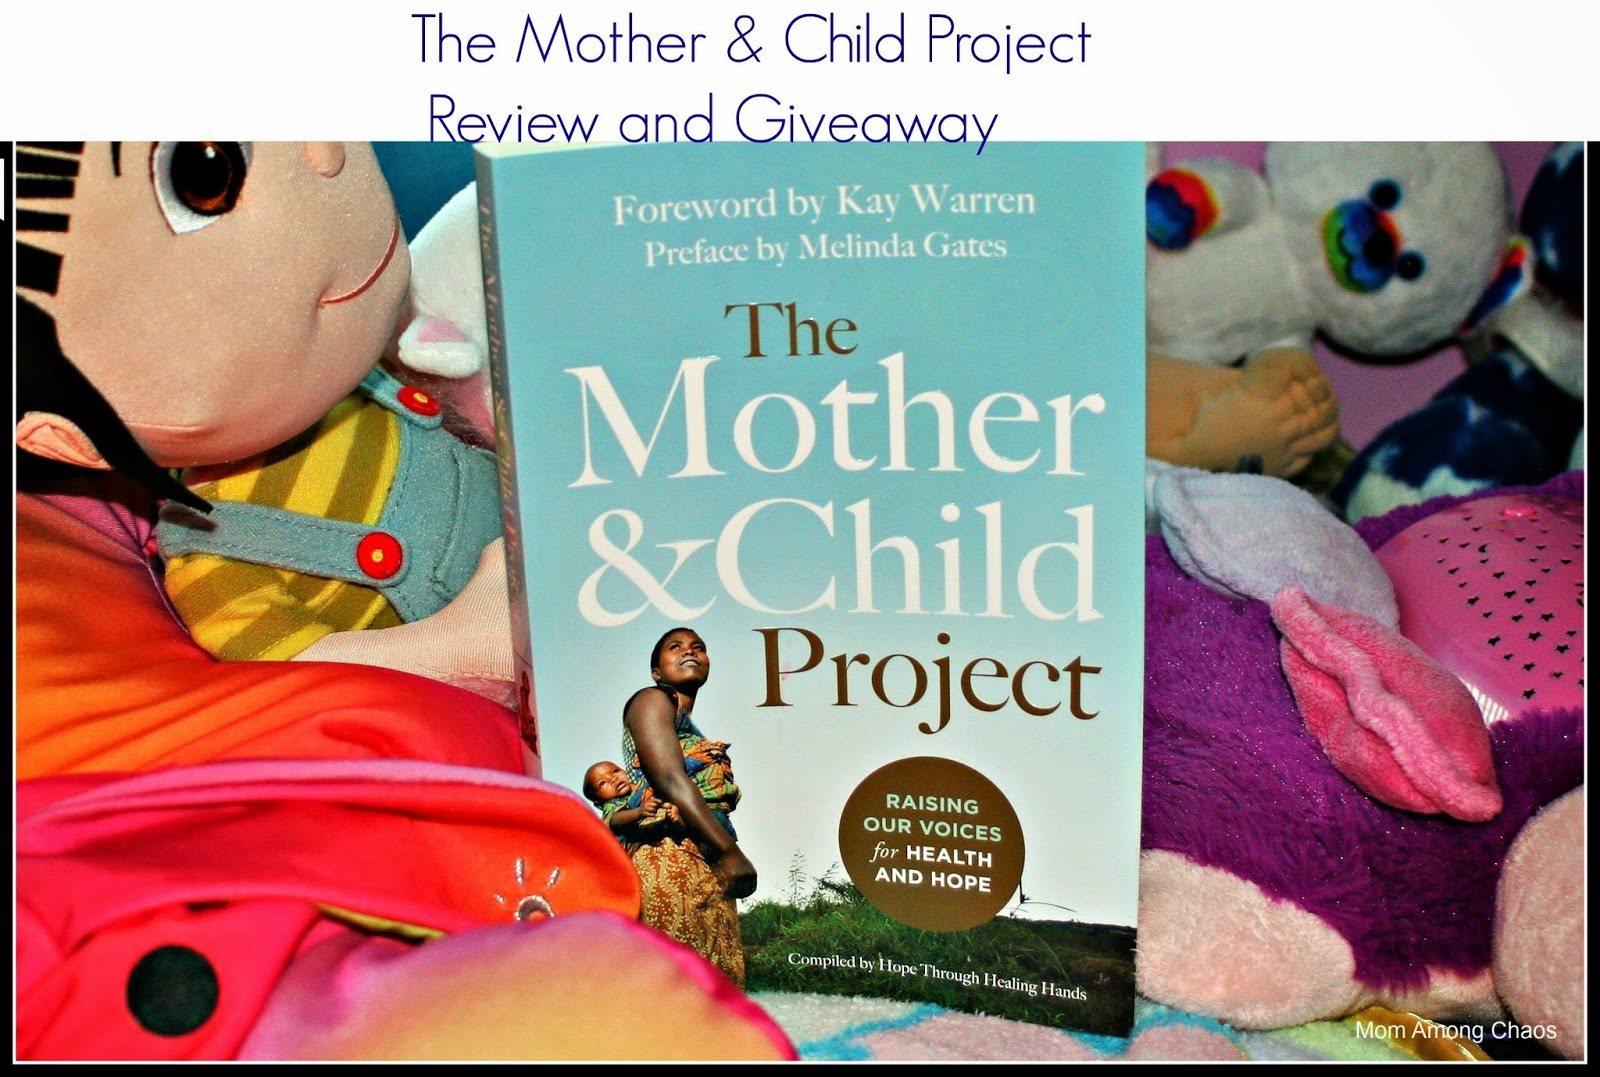 The Mother & Child Project, Family Christian, #FCBlogger, family, mom, clean water, Christian, child spacing, birth control, giveaway, prizes